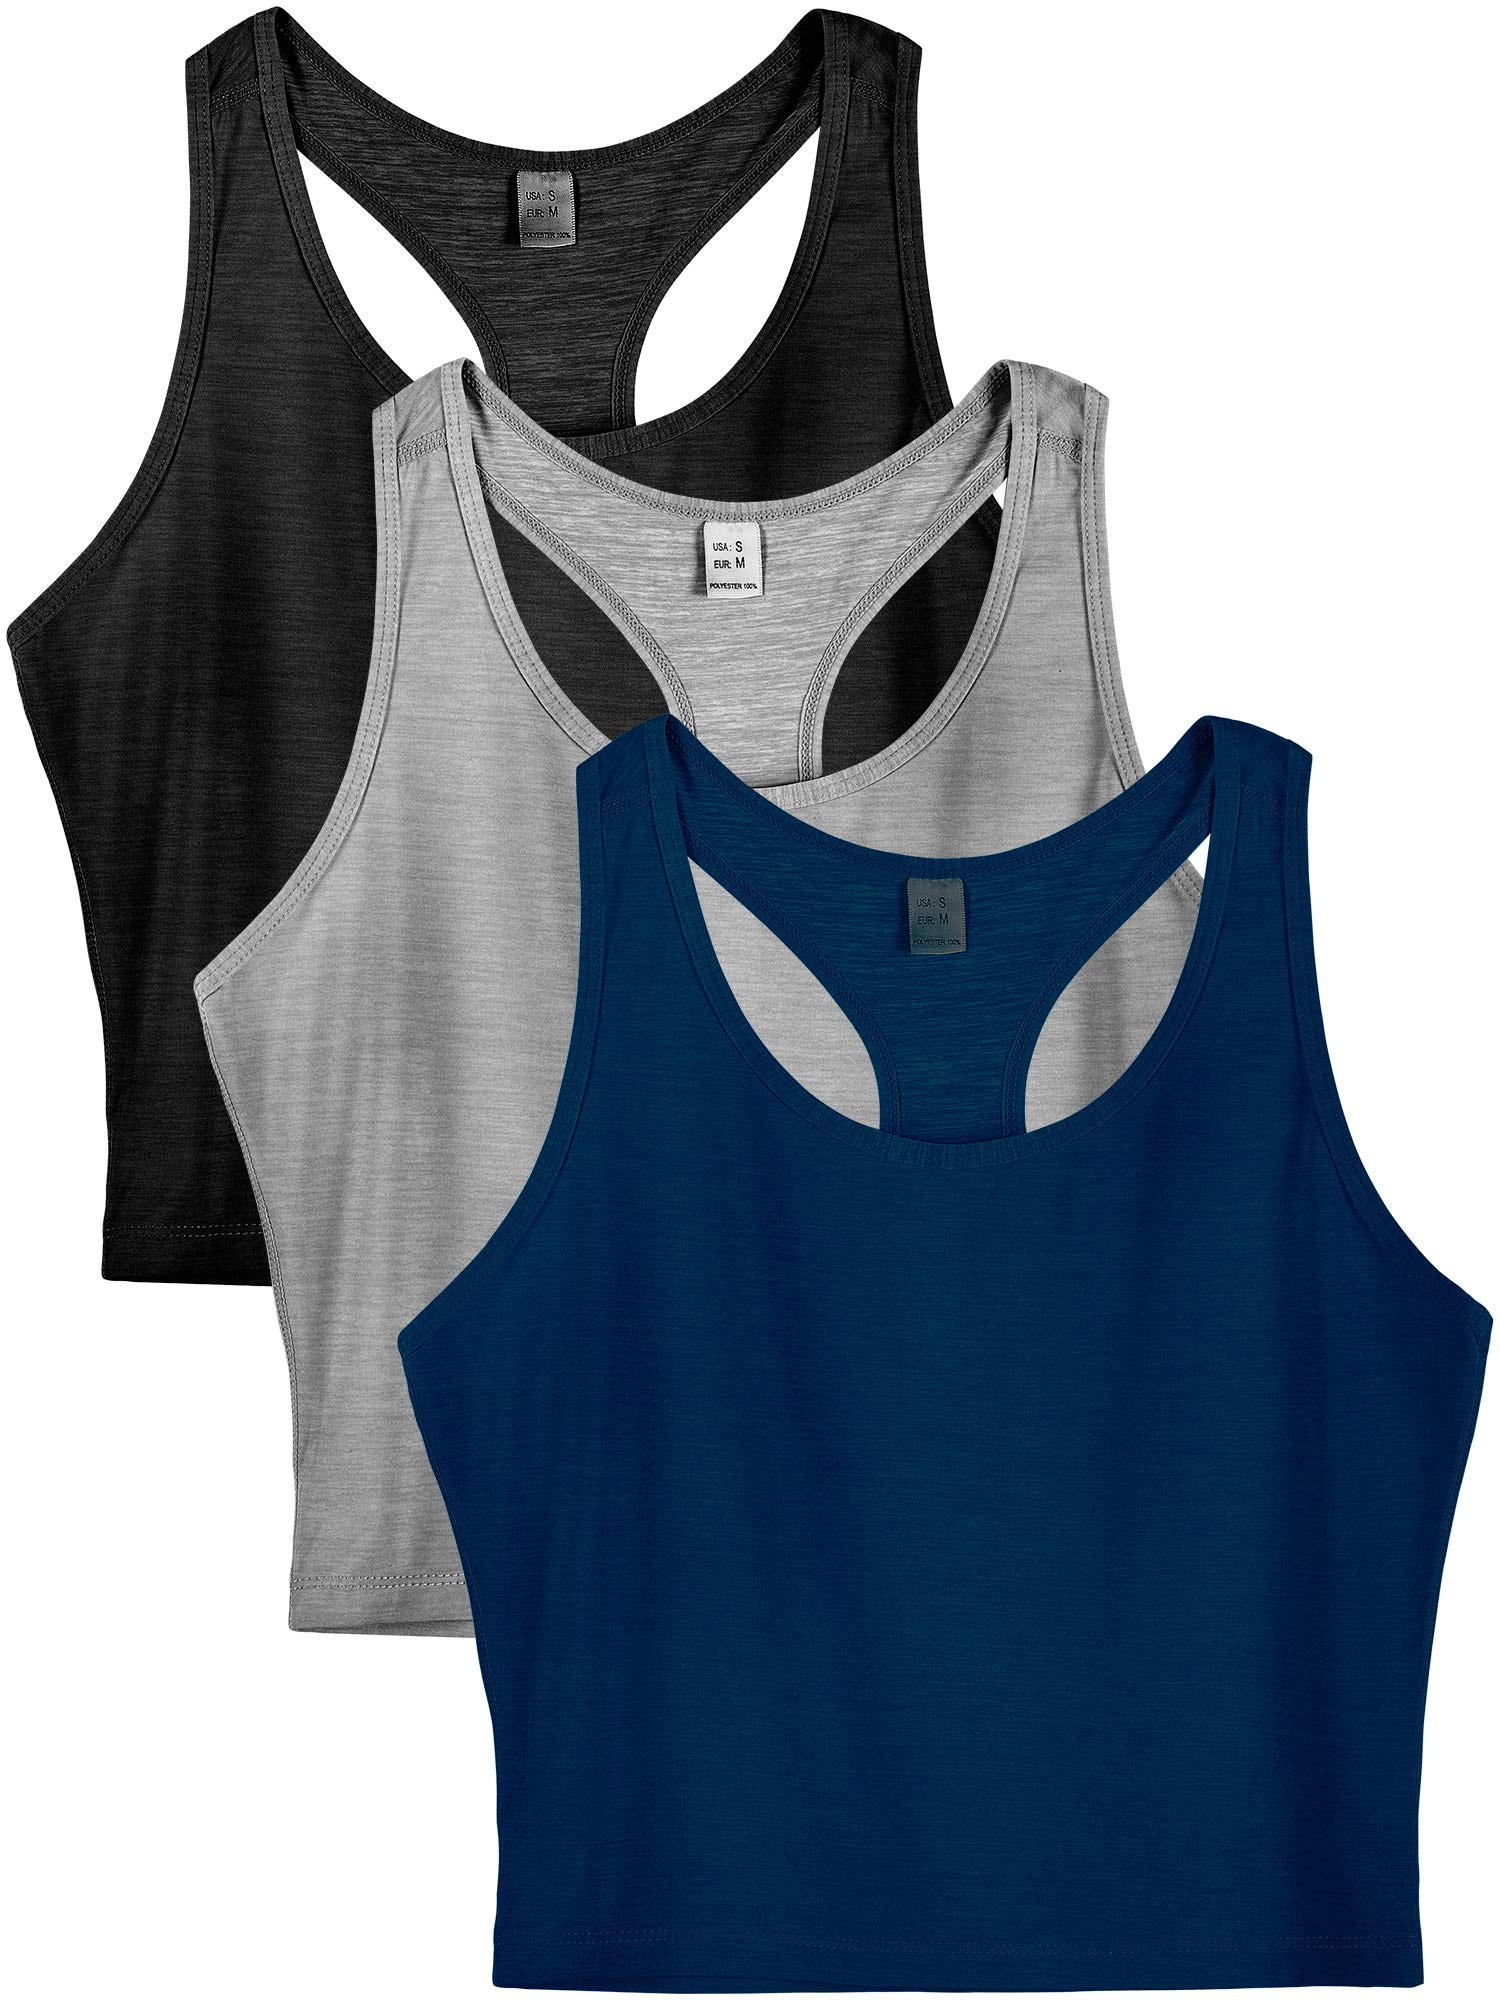 Cadmus Workout Racerback Yoga Tank Top for Women